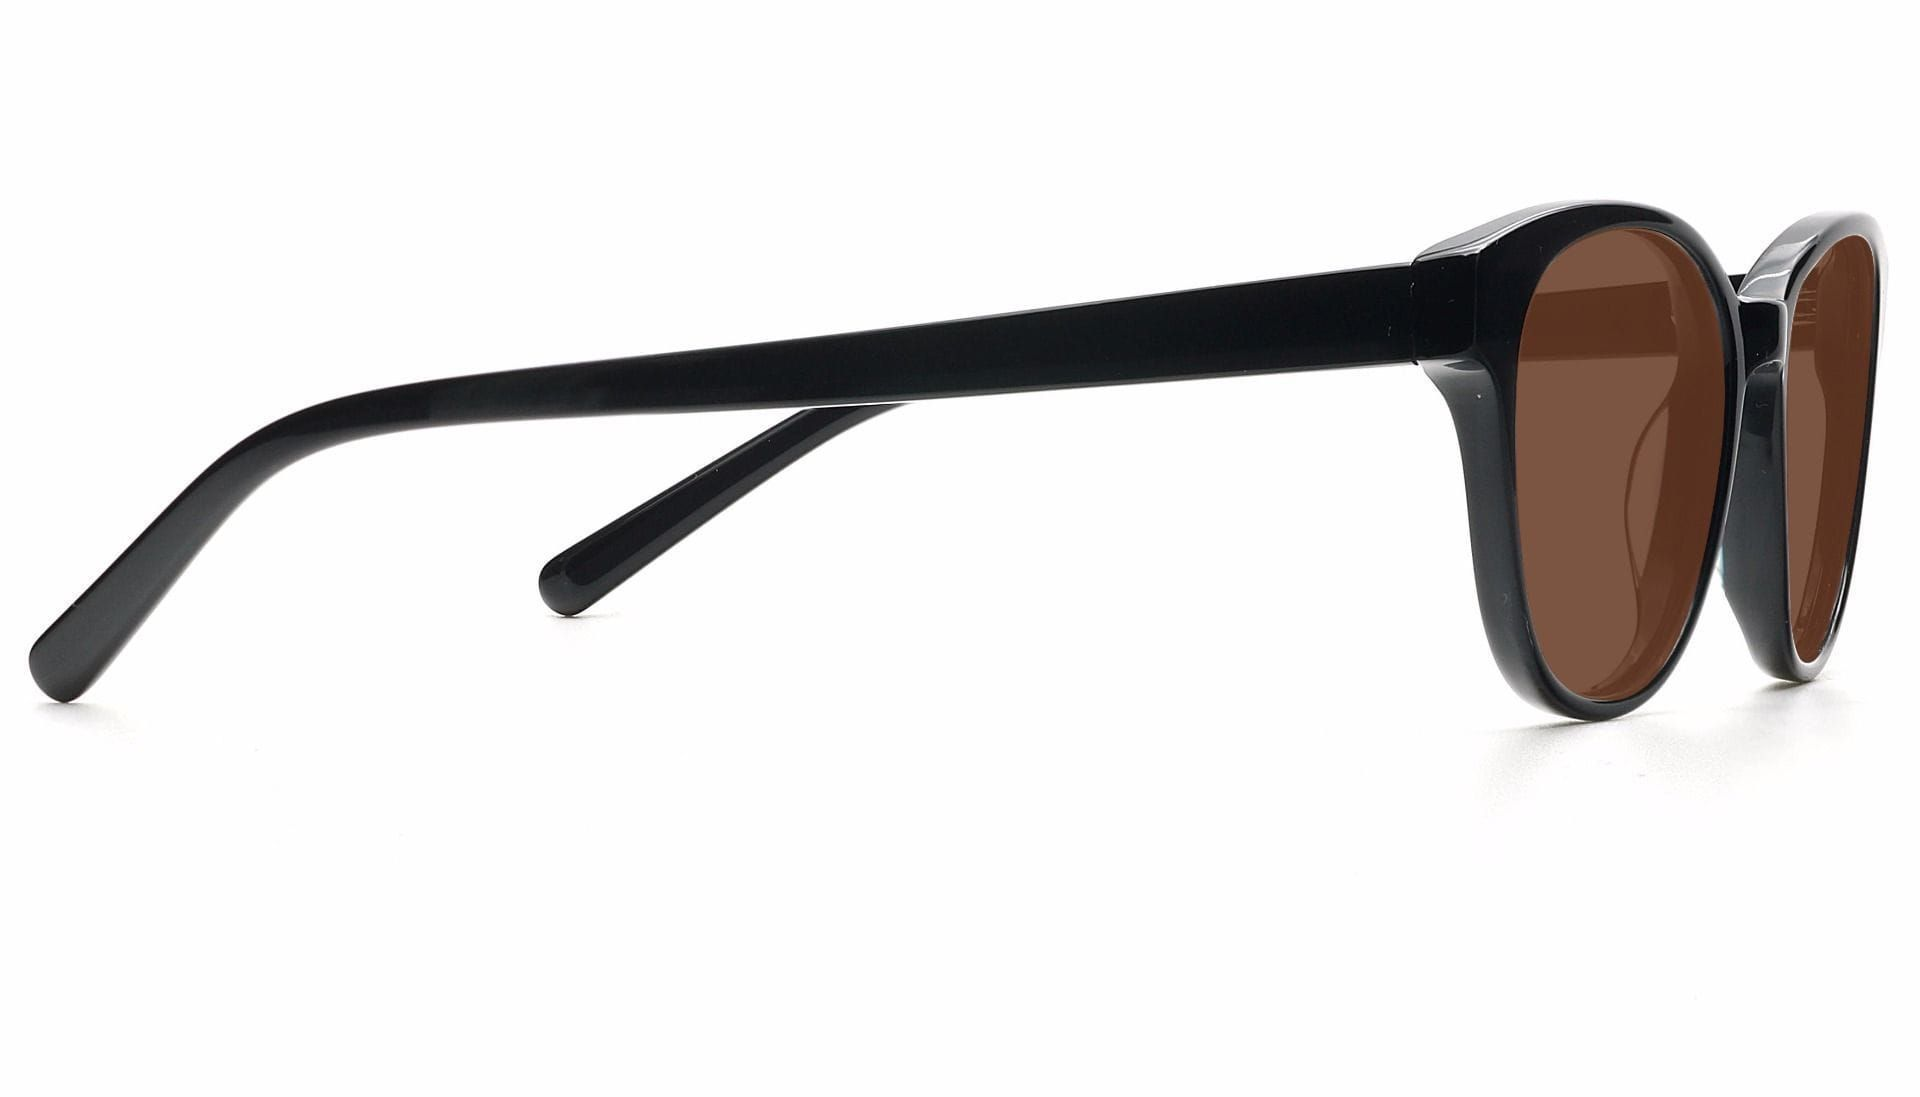 Elan Classic Square Non-Rx Sunglasses - Black Frame With Brown Lenses